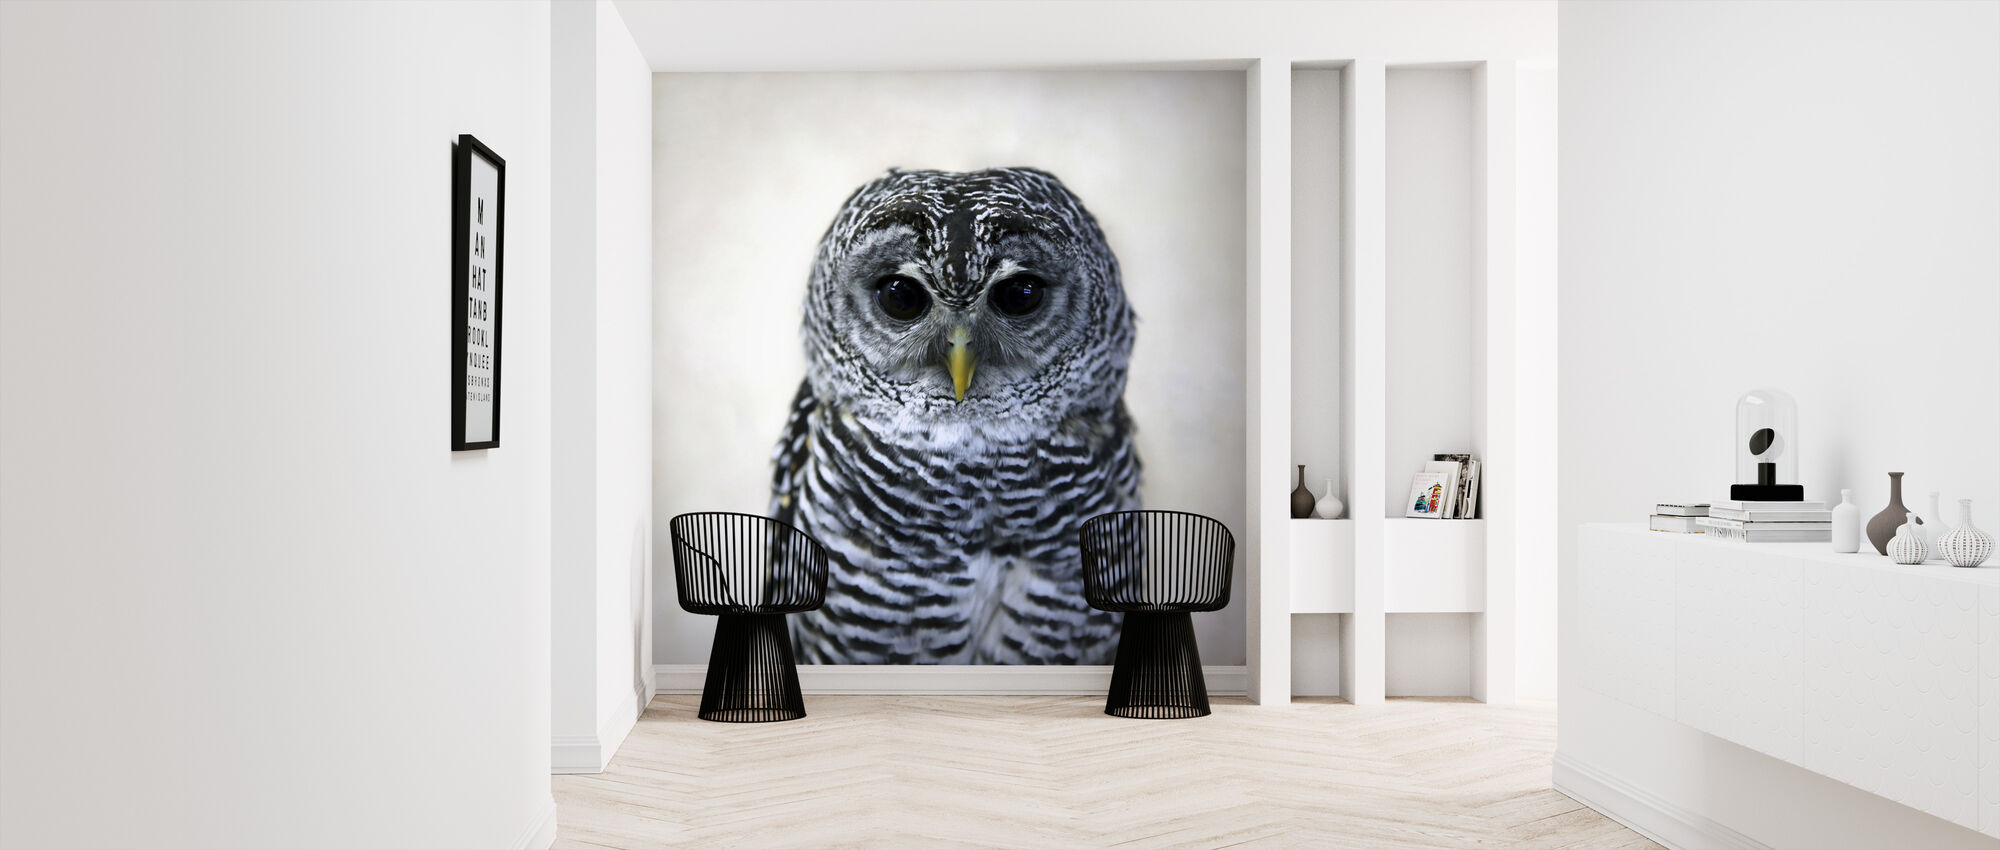 Rufous Legged Owl - Wallpaper - Hallway